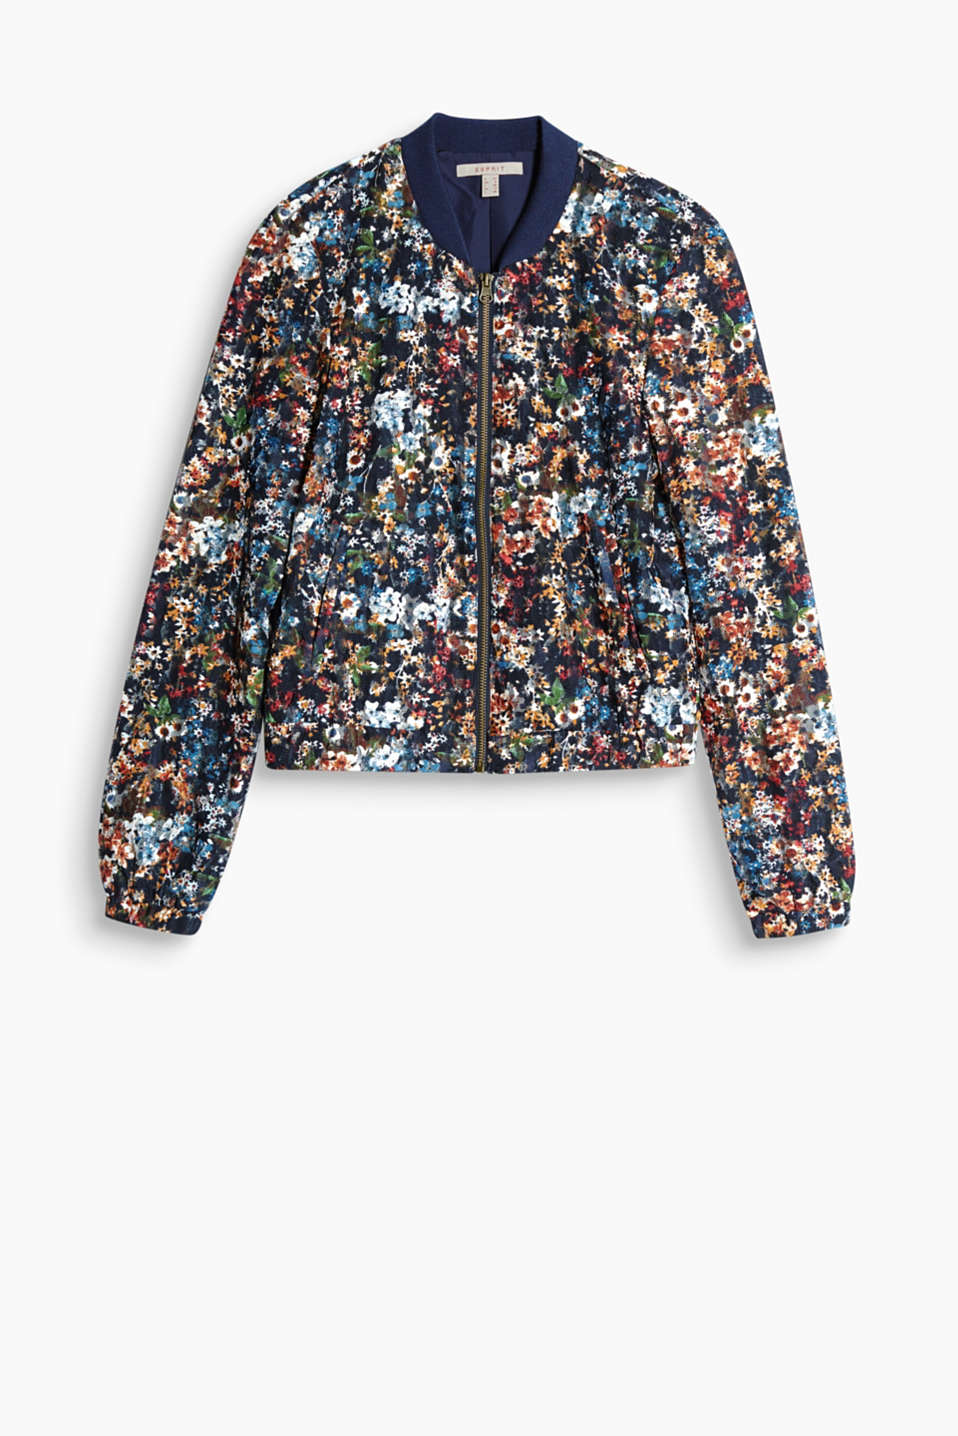 Short bomber jacket with a bright floral print in printed lace